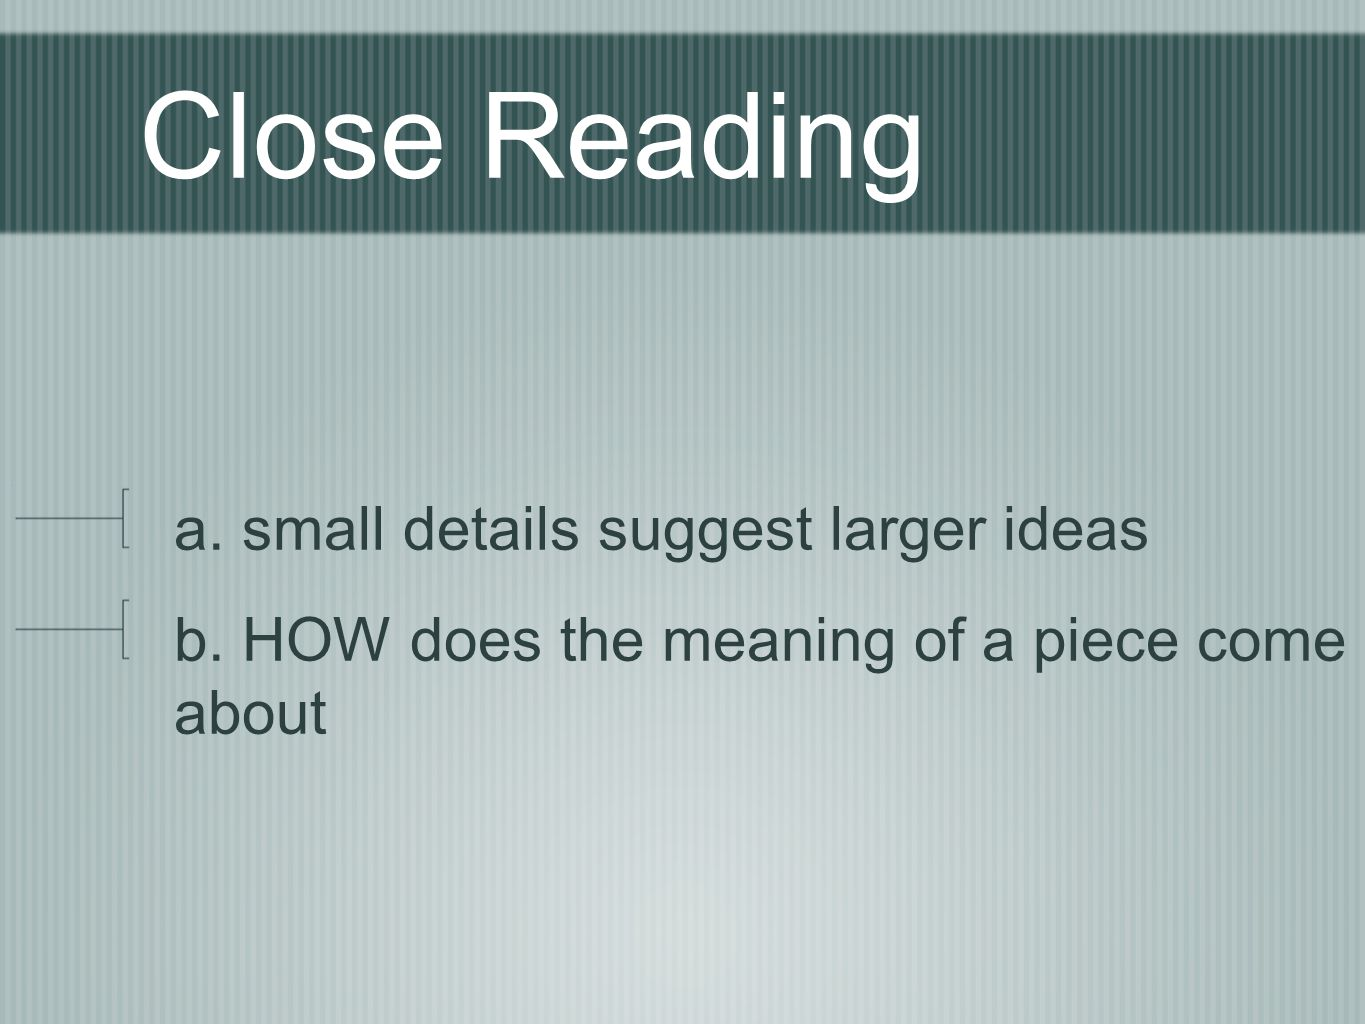 Close Reading a. small details suggest larger ideas